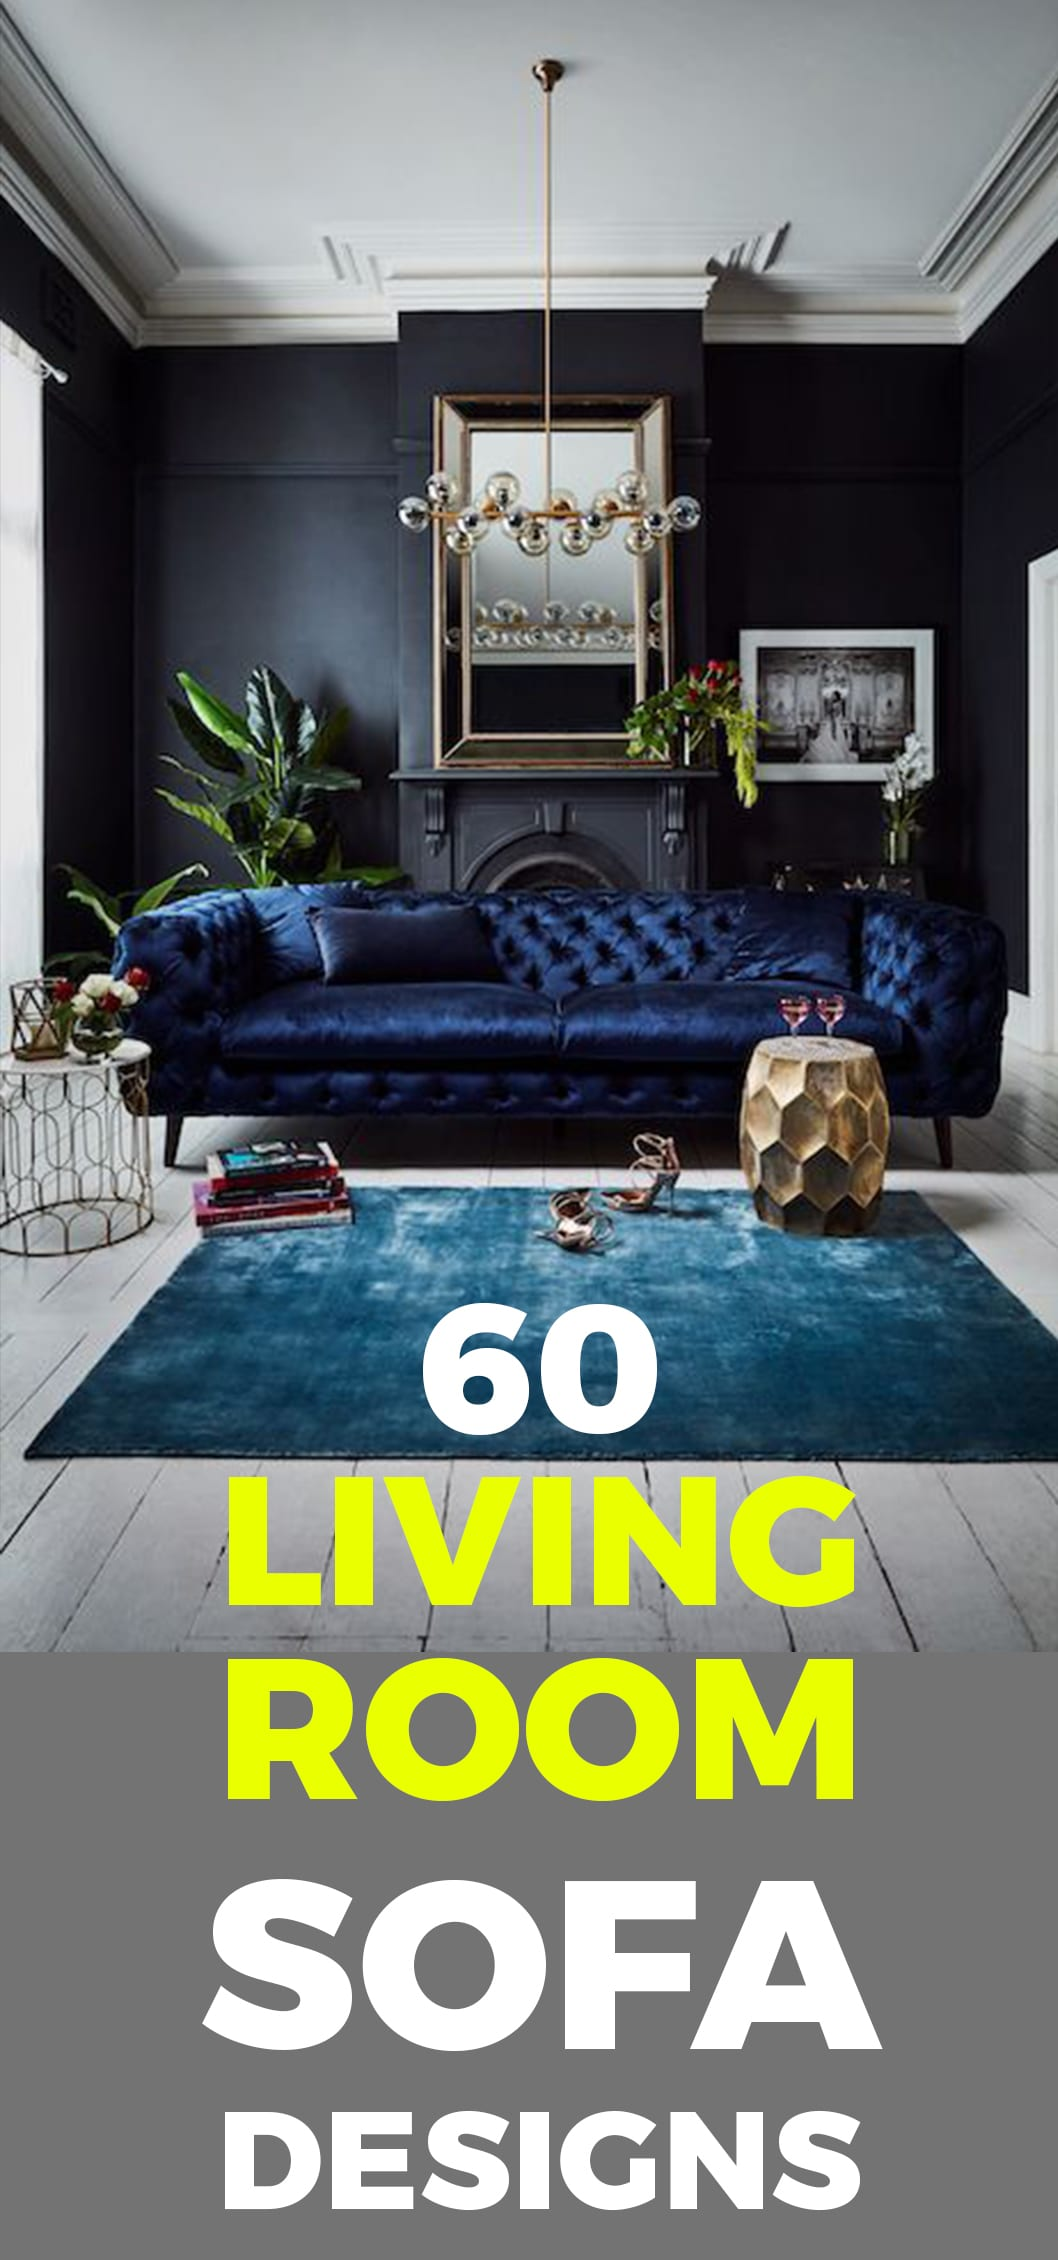 Blue velvet living room sofa ideas in 2019.